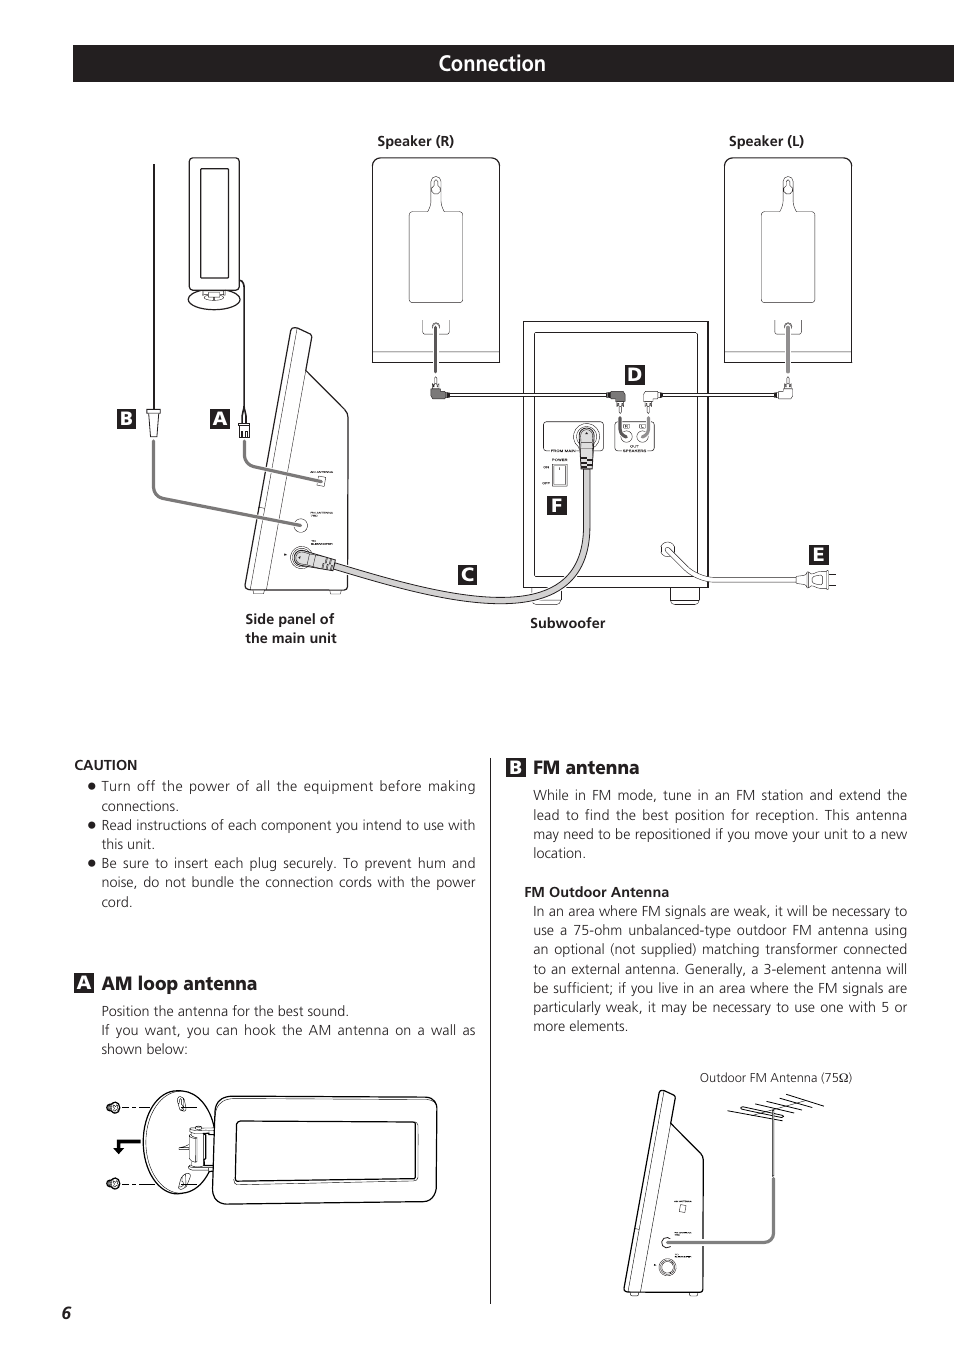 Connection   Teac CD-X9 User Manual   Page 6 / 24   Original